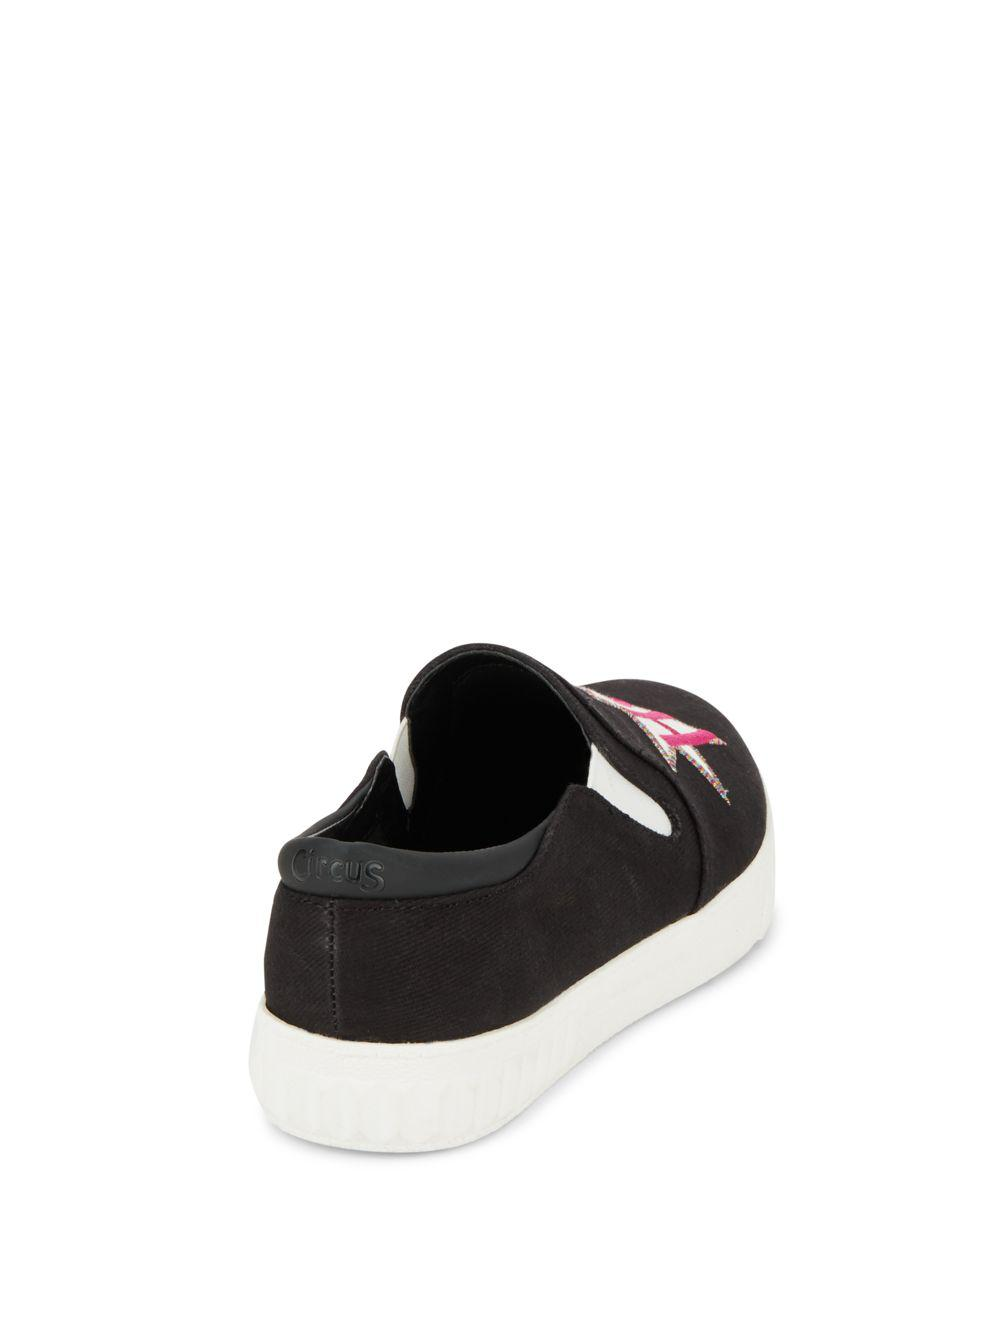 6a06716806c0 Lyst - Circus by Sam Edelman Charlie Hot Mess Slip-on Sneakers in Pink